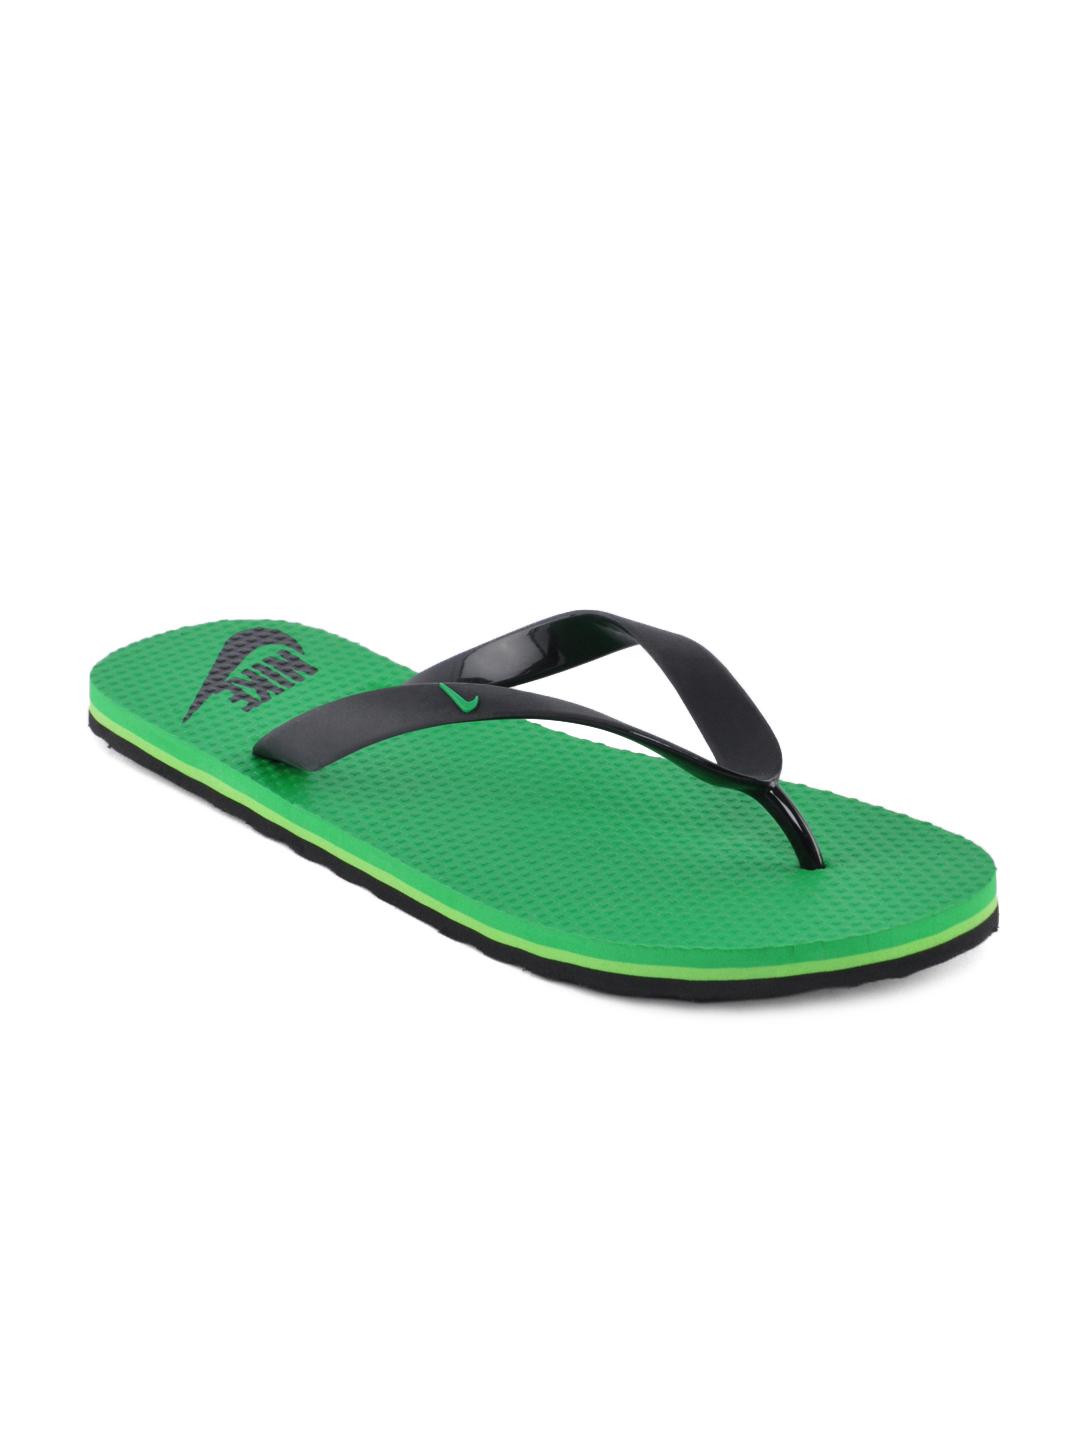 Nike Men Aquahype Green Flip Flops